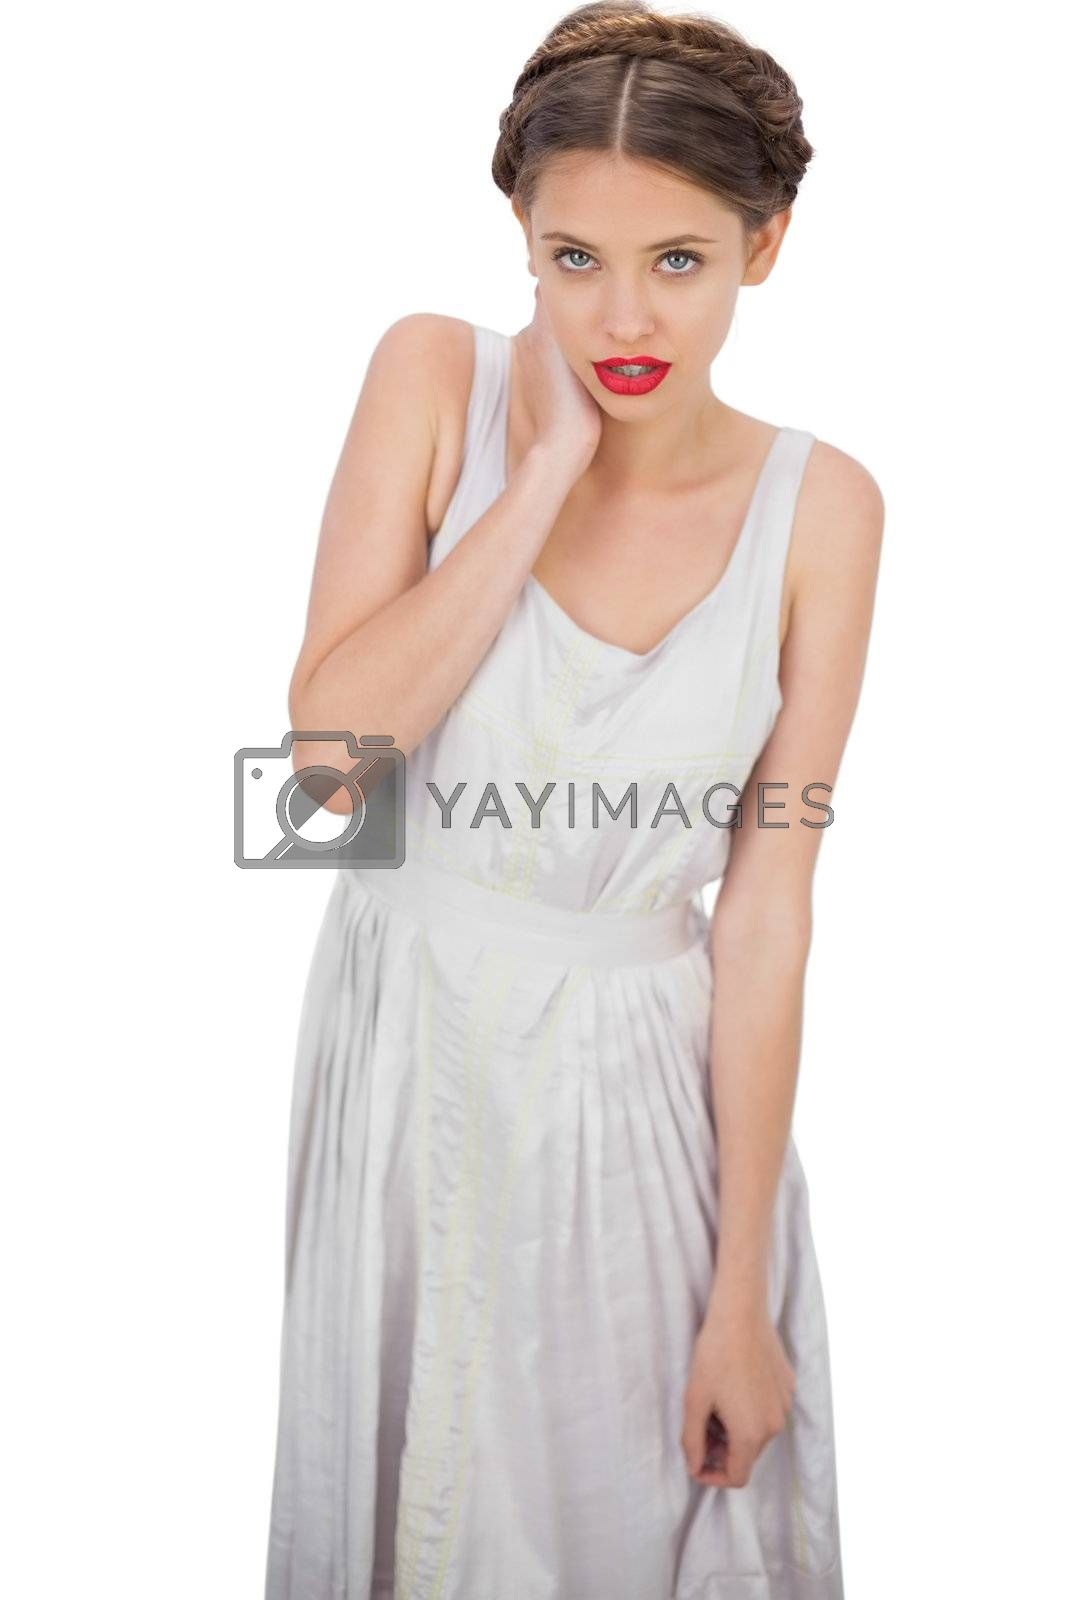 Embarrassed model in white dress posing hand on the neck by Wavebreakmedia